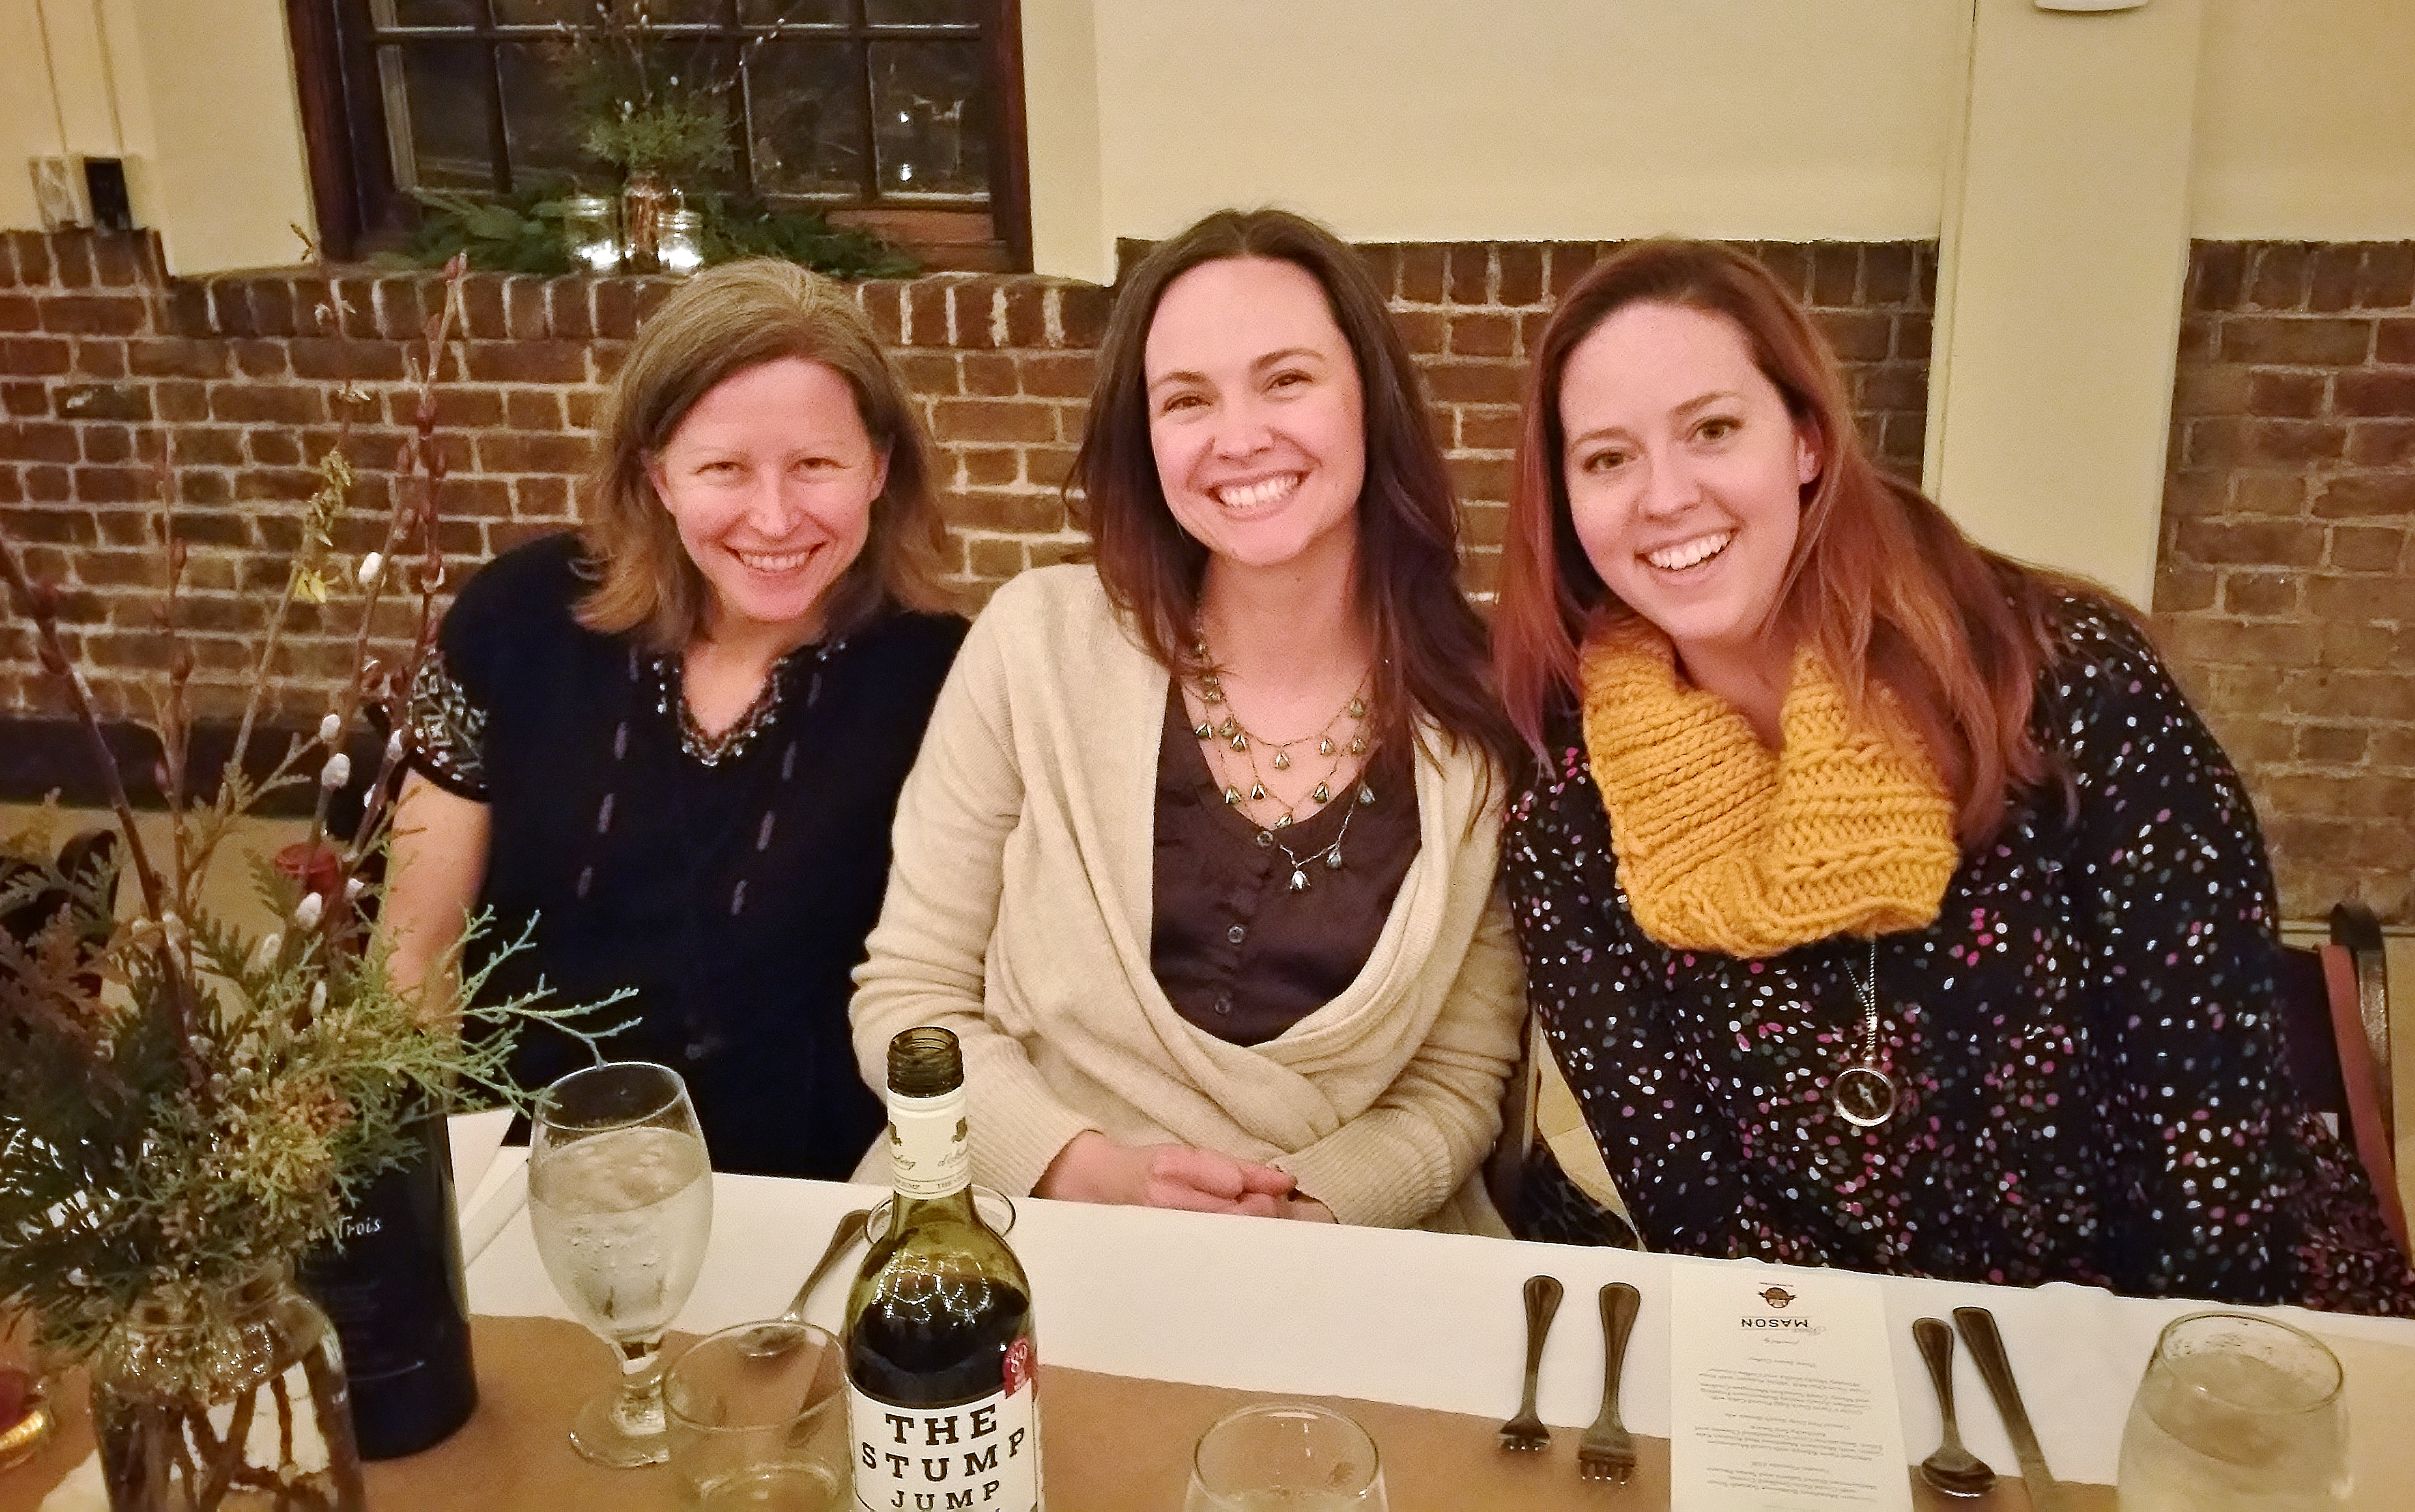 Diane Reynolds, Mary Beth Tugwell and Katie Tugwell. Mary Beth works with Dewhirst Properties, who provided the space for the evening.